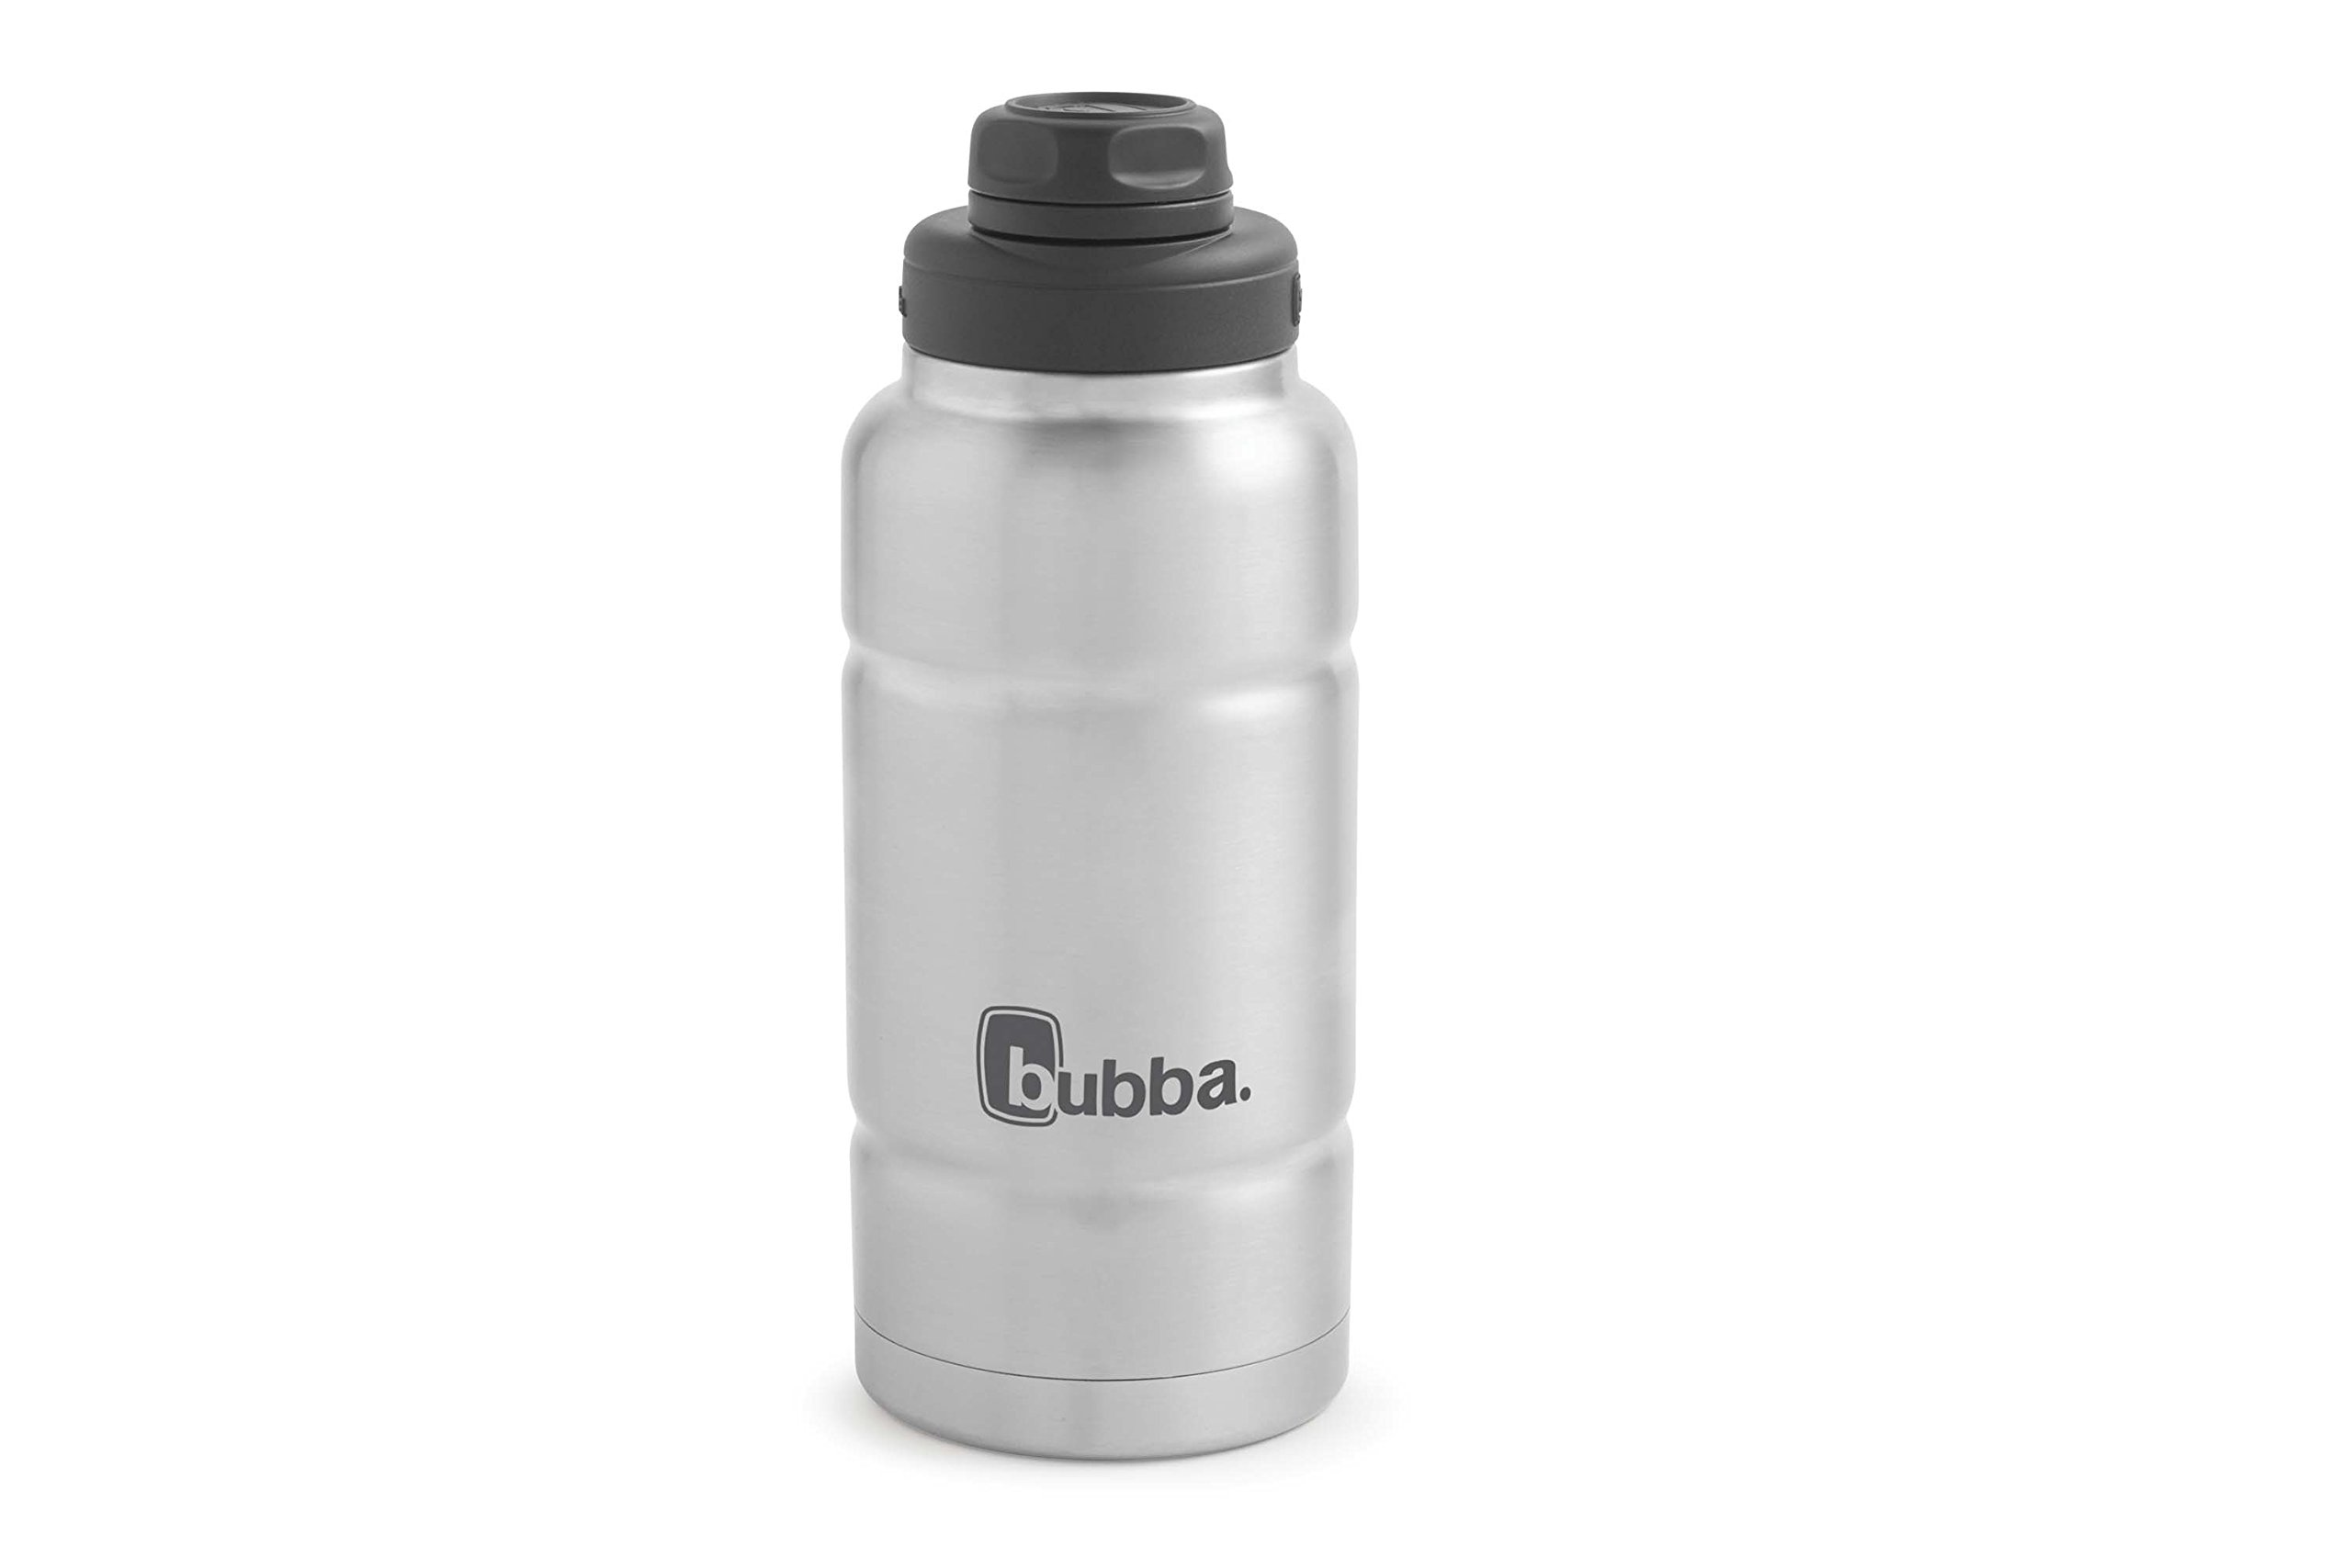 Bubba Trailblazer Vacuum-Insulated Stainless Steel Water Bottle, 32 oz, Stainless Steel